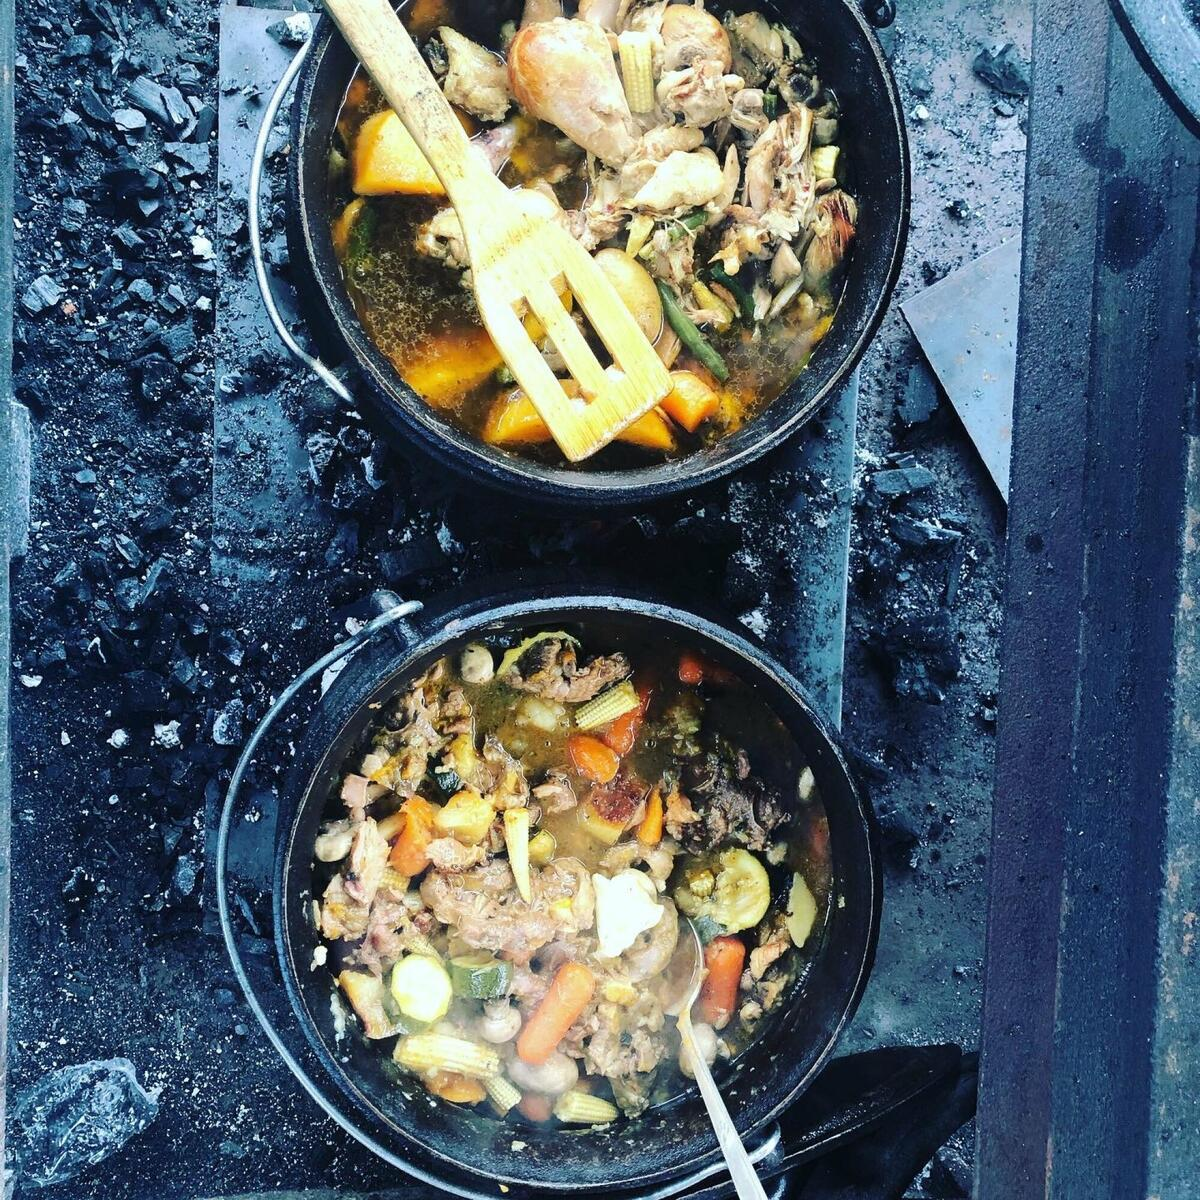 Curries cooked on open fires